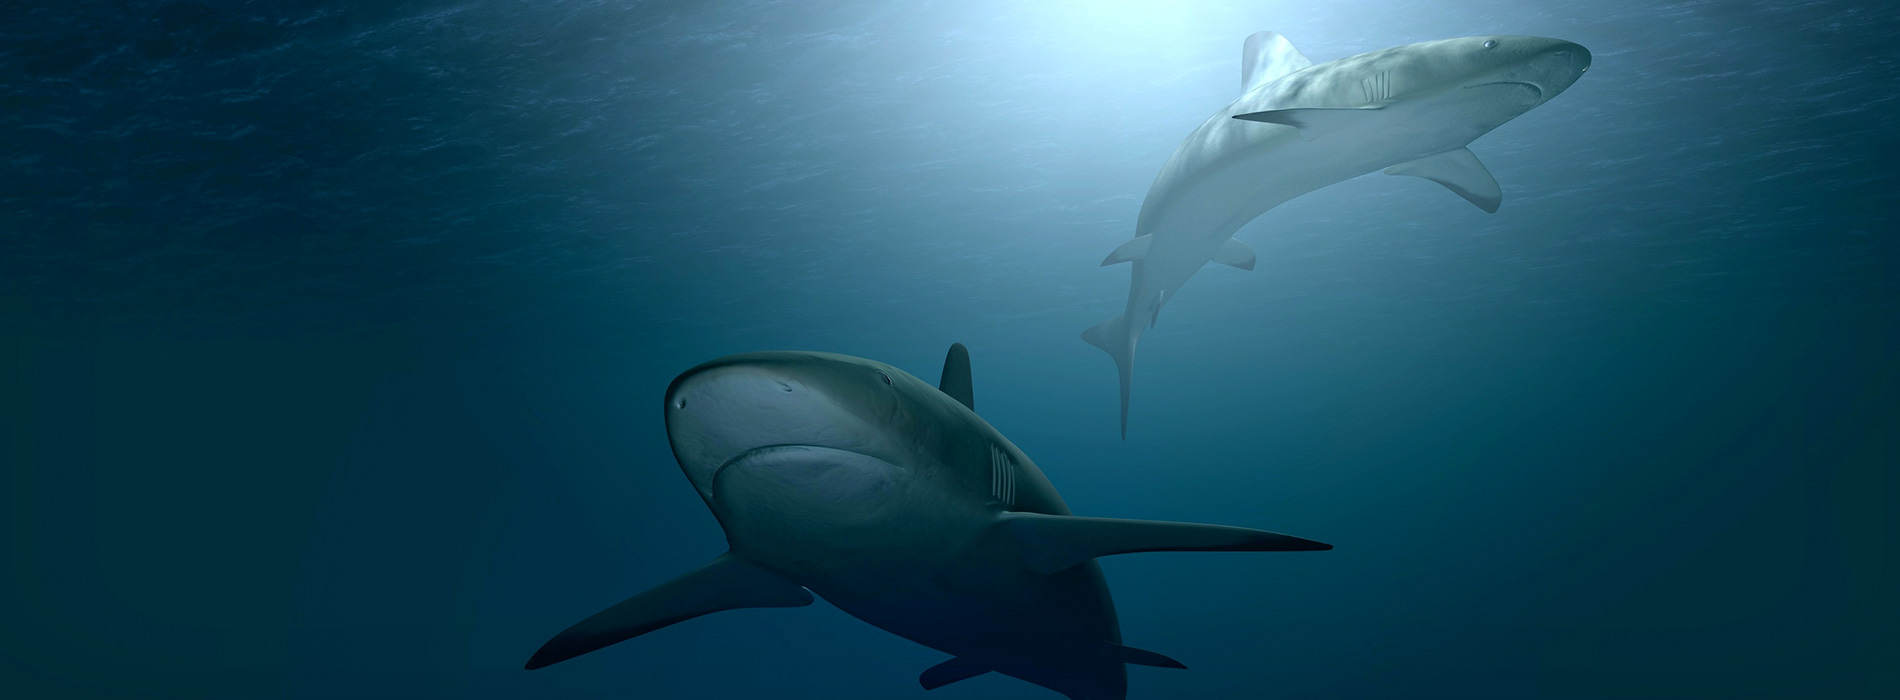 Two sharks, seen from below looking toward the water's surface